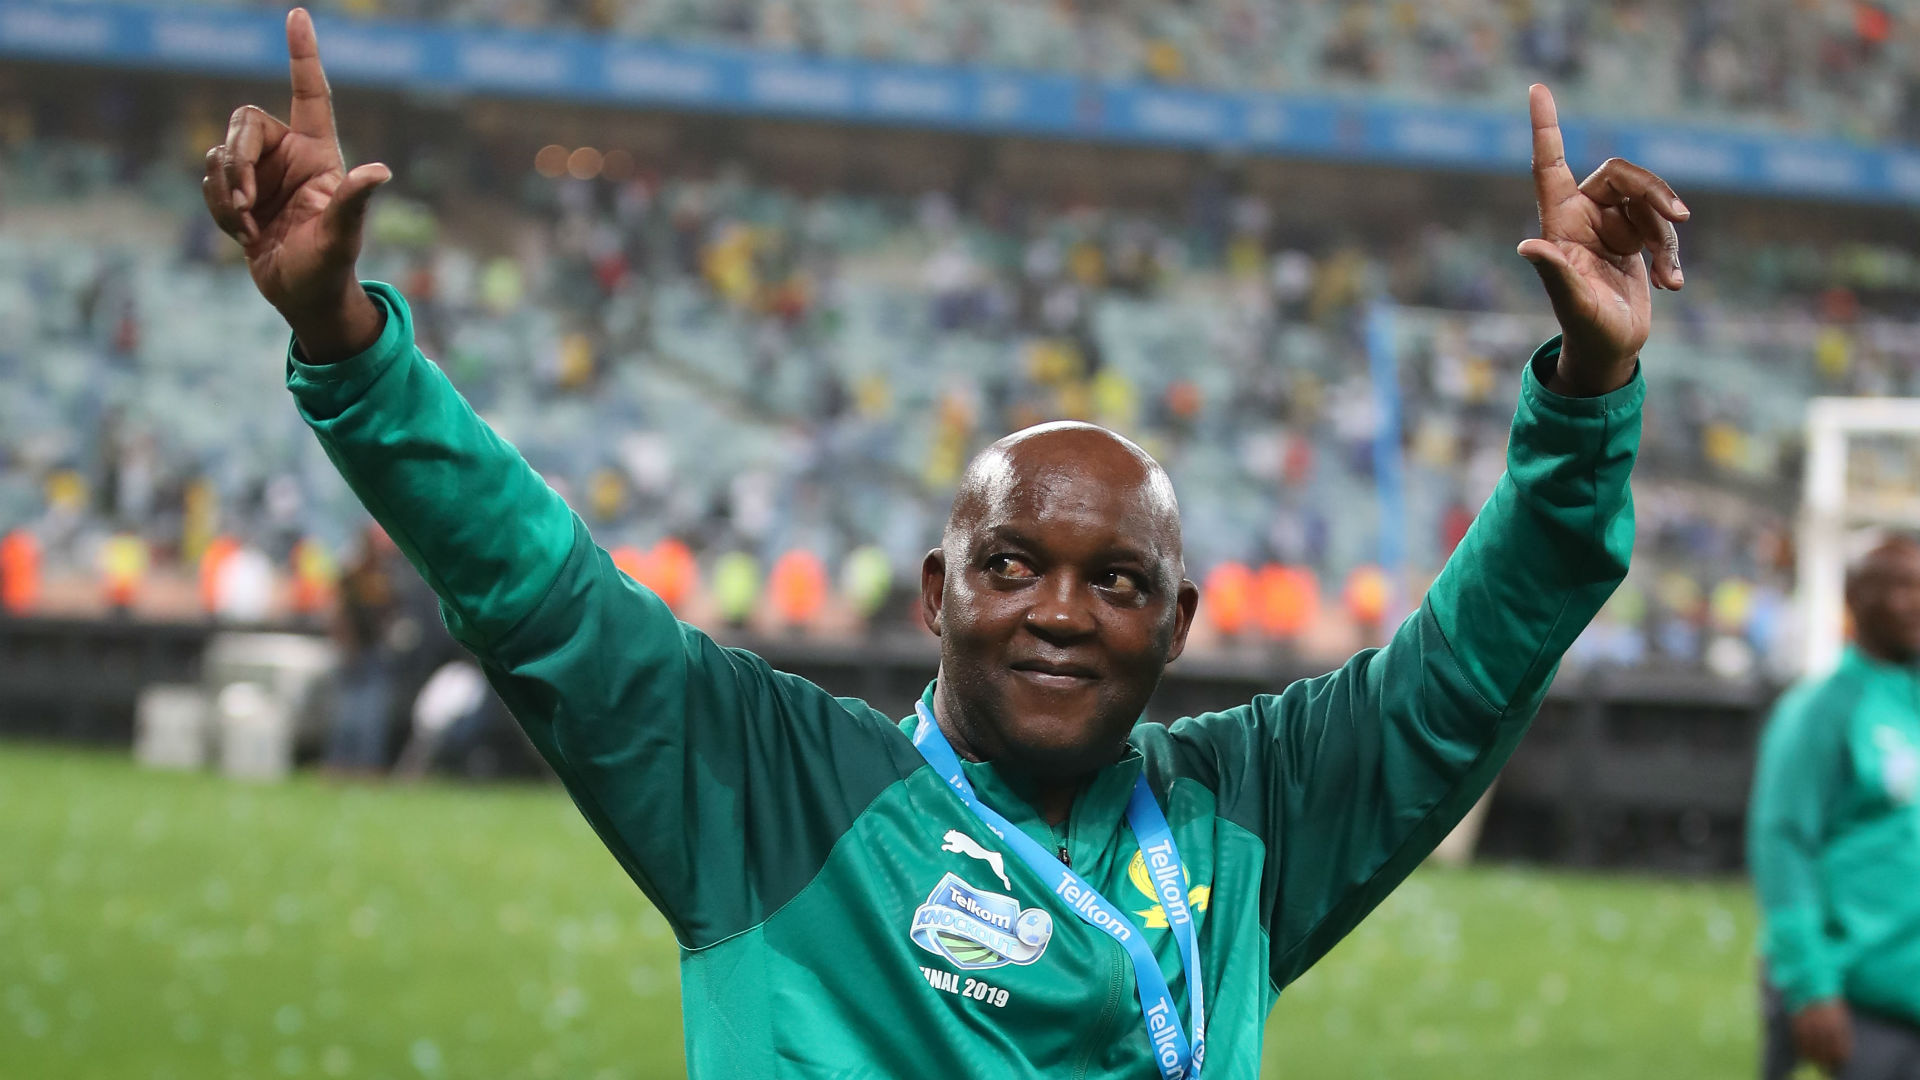 Mamelodi Sundowns' Mosimane: If you want to win the PSL title then you must say so